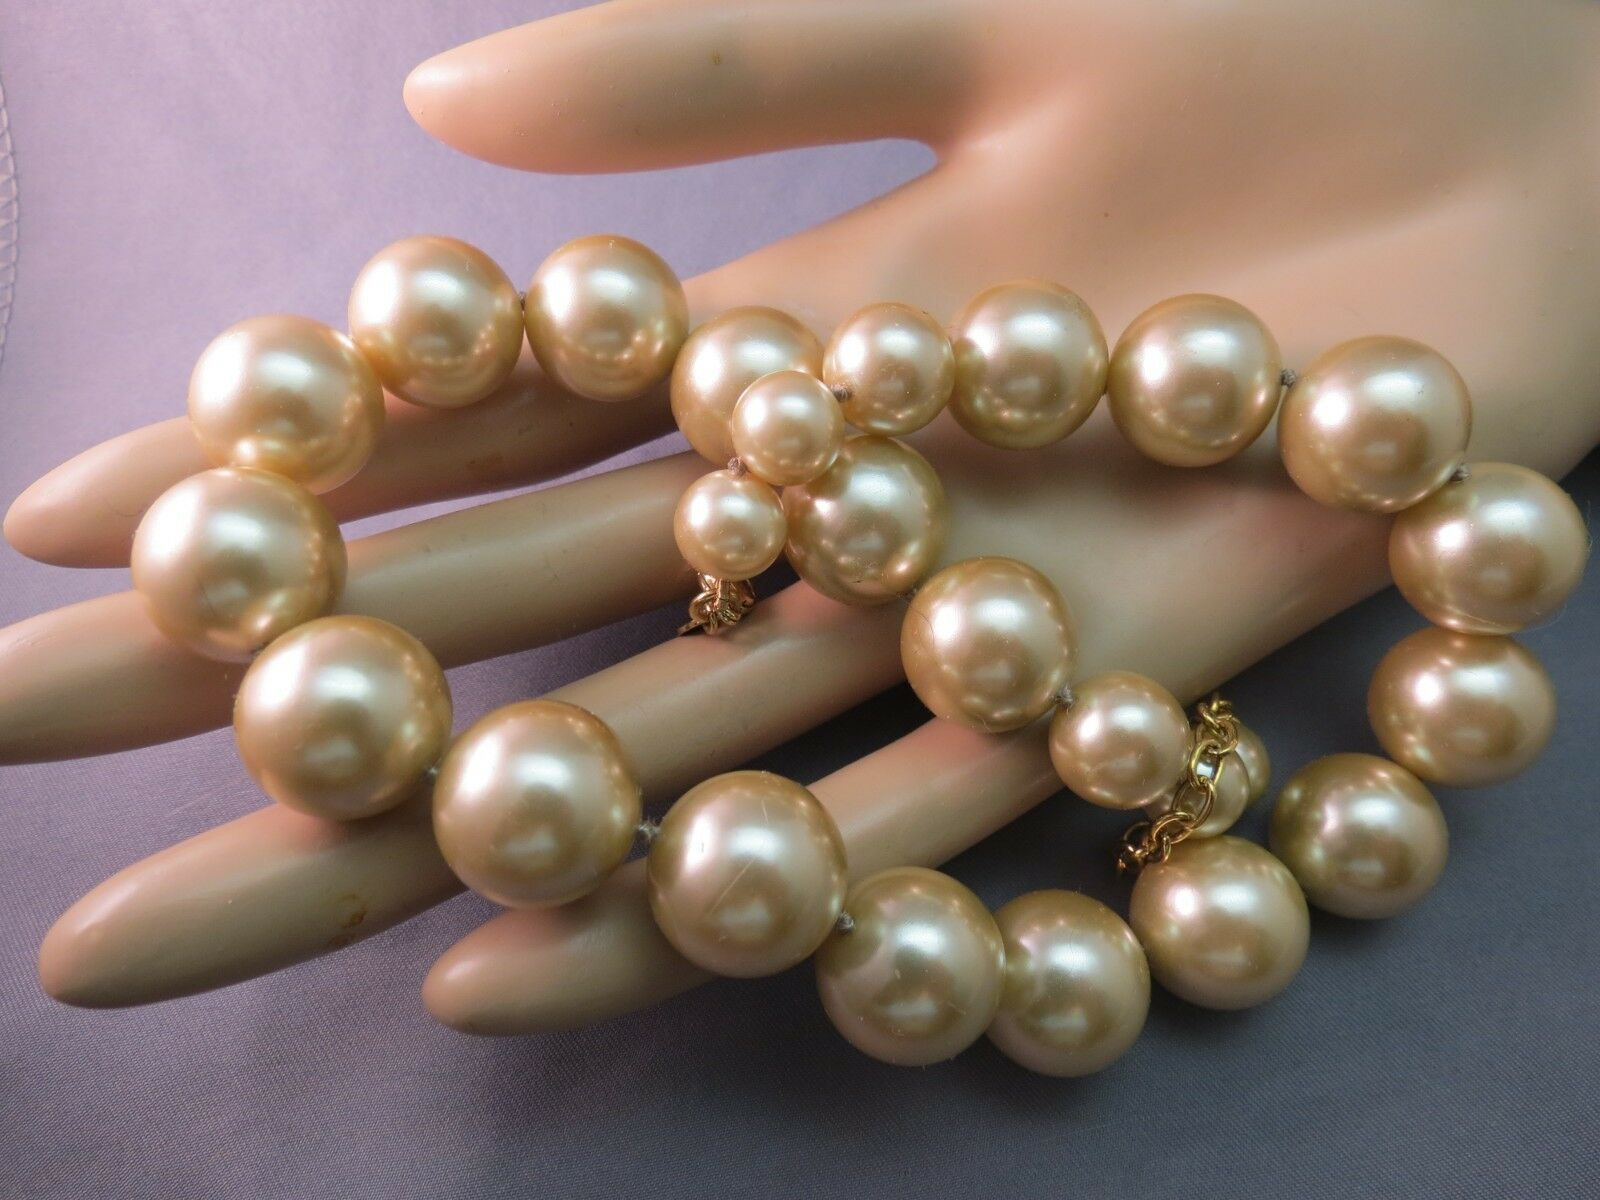 VTG Monet Big Pearl Necklace Hand Knotted Sable Cream Lobster 16mm Glass Beads